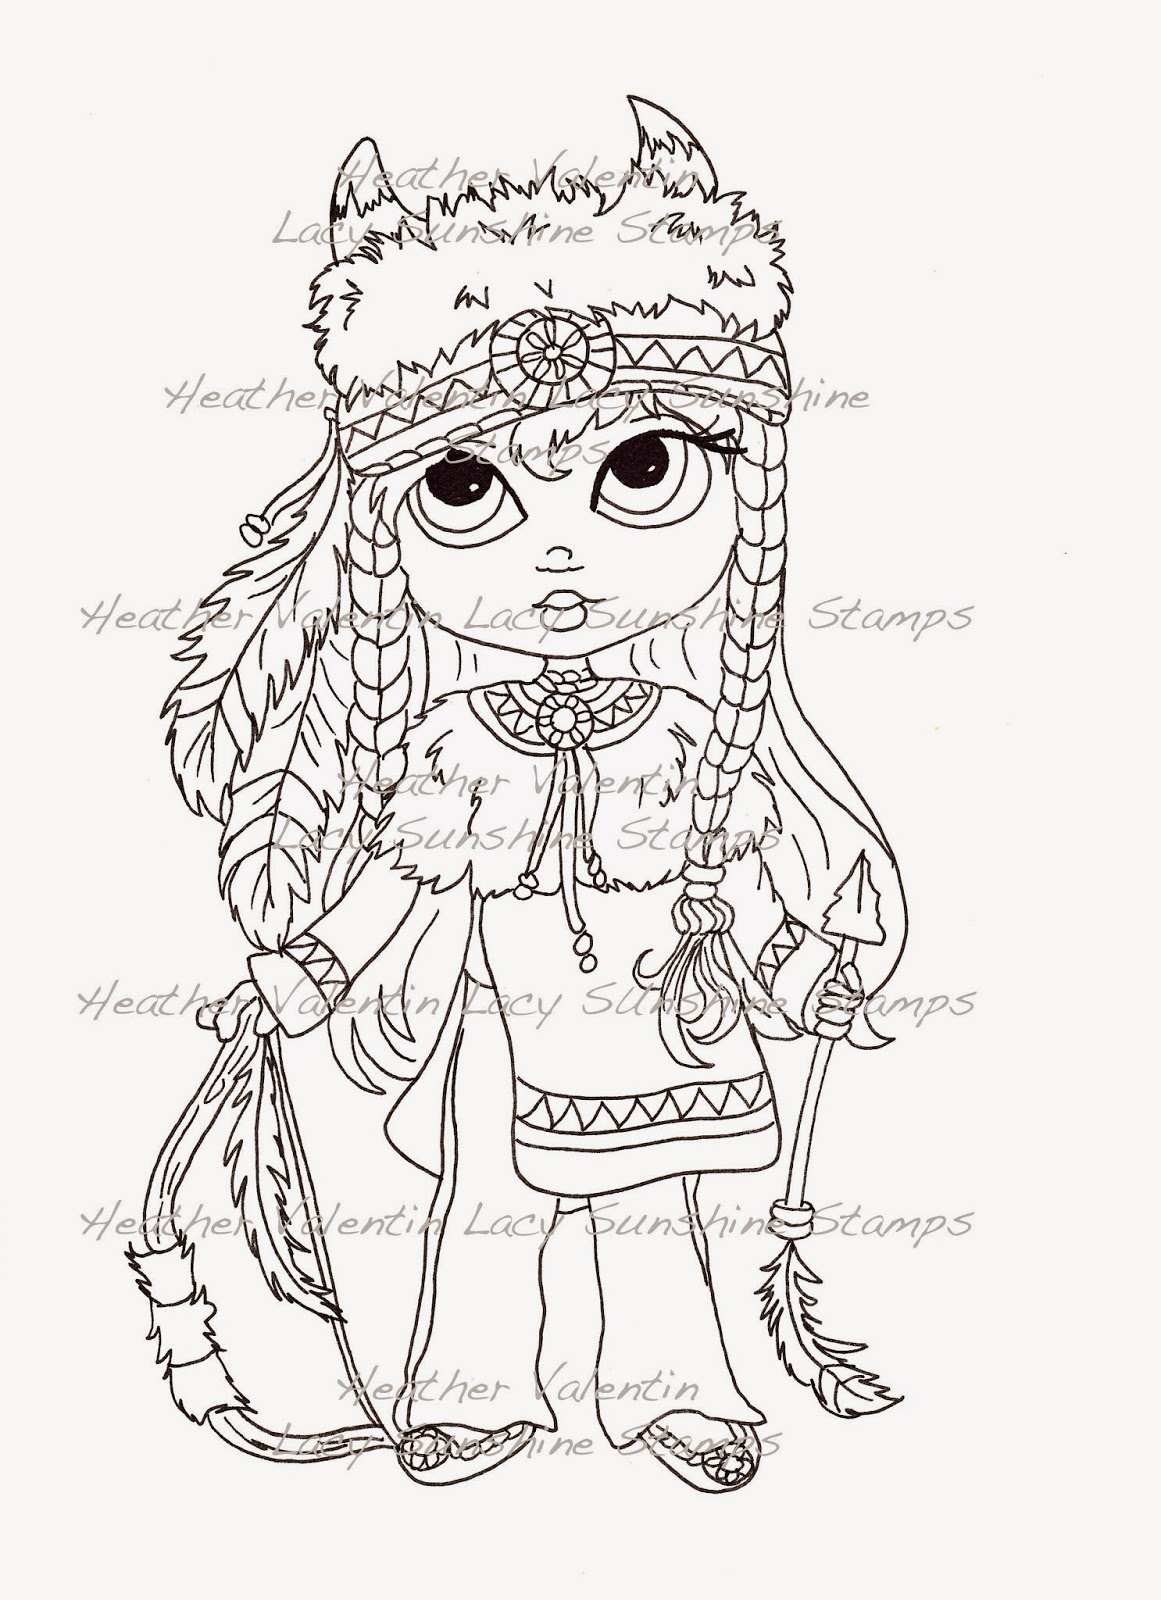 Puppet Indian Maiden Sketch Coloring Page